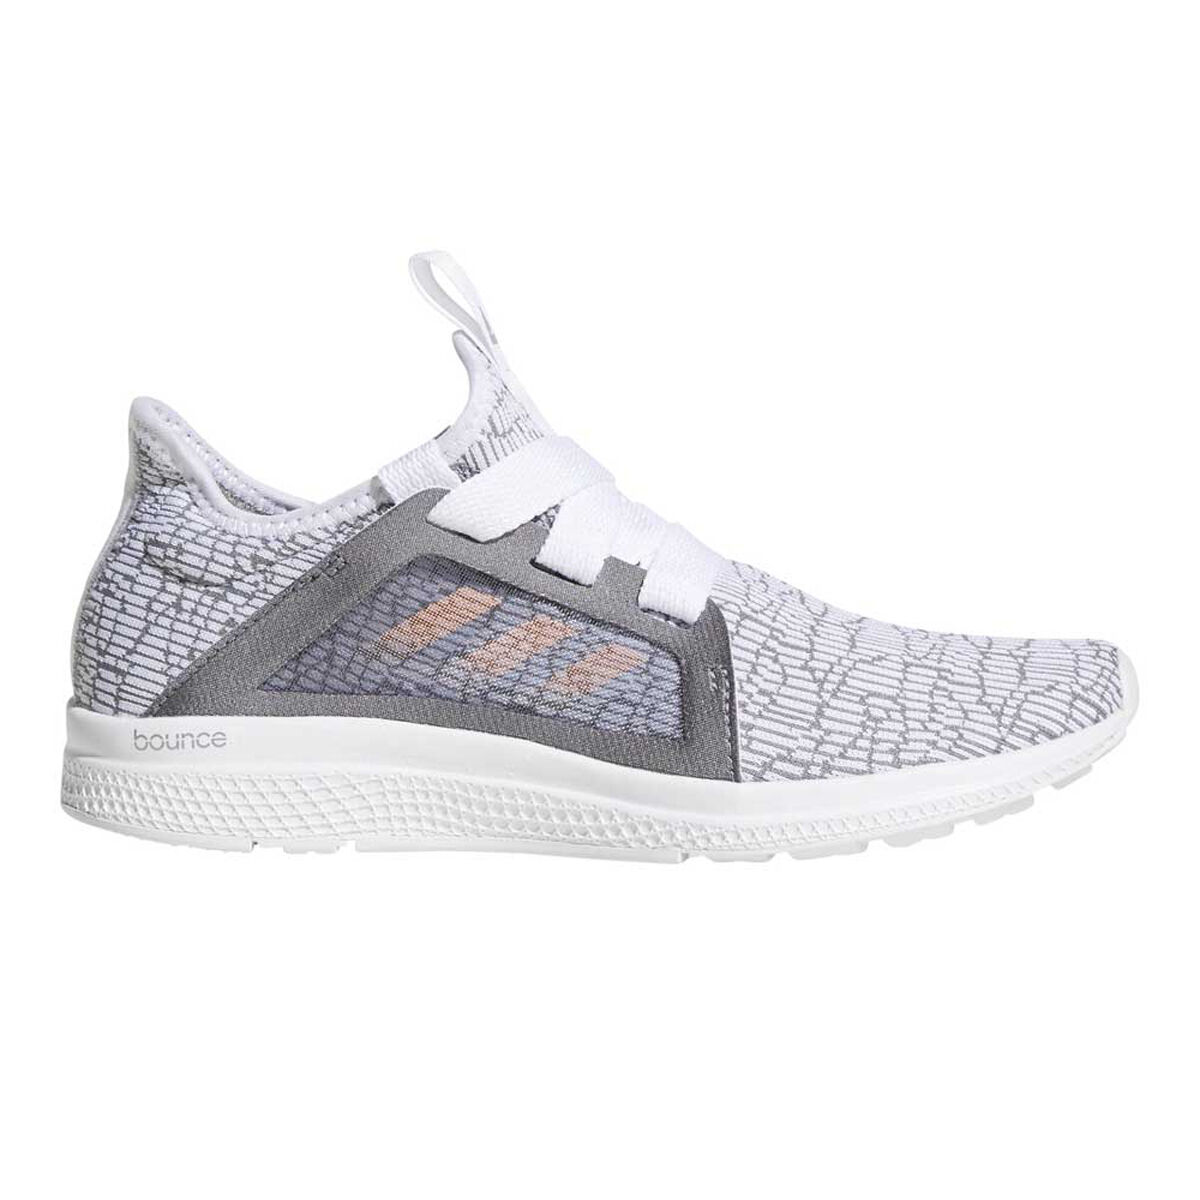 adidas Edge Lux Girls Running Shoes Grey Coral US 4